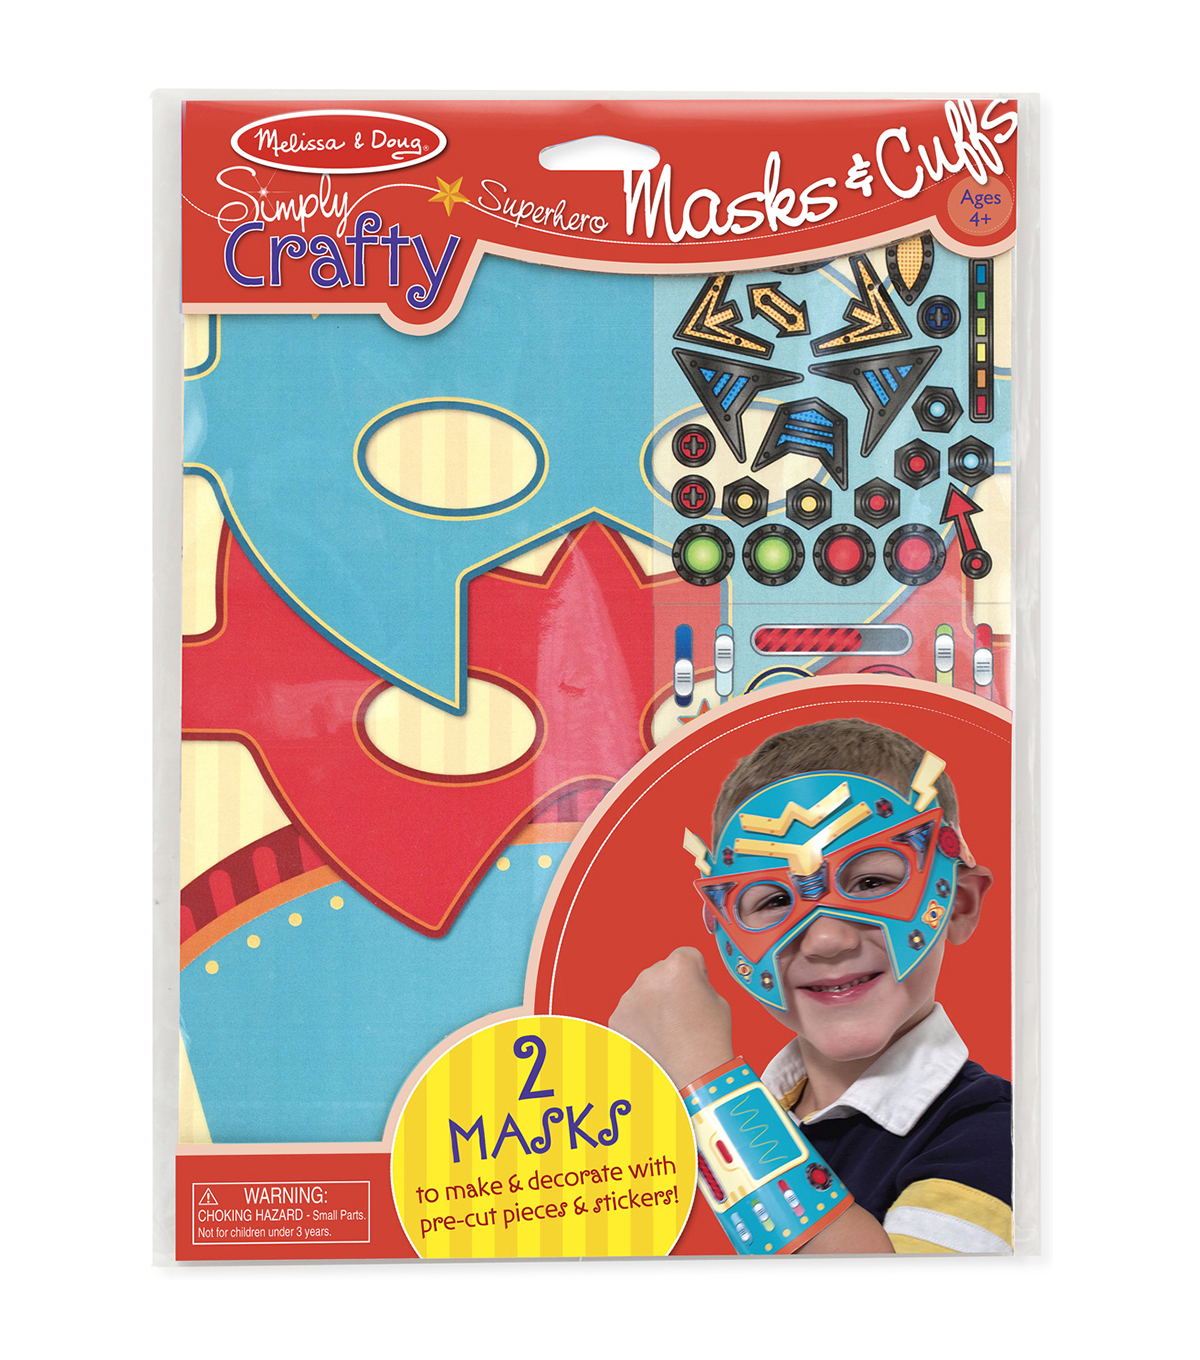 Melissa & Doug Simply Crafty Superhero Masks & Cuffs Kit-Makes 2